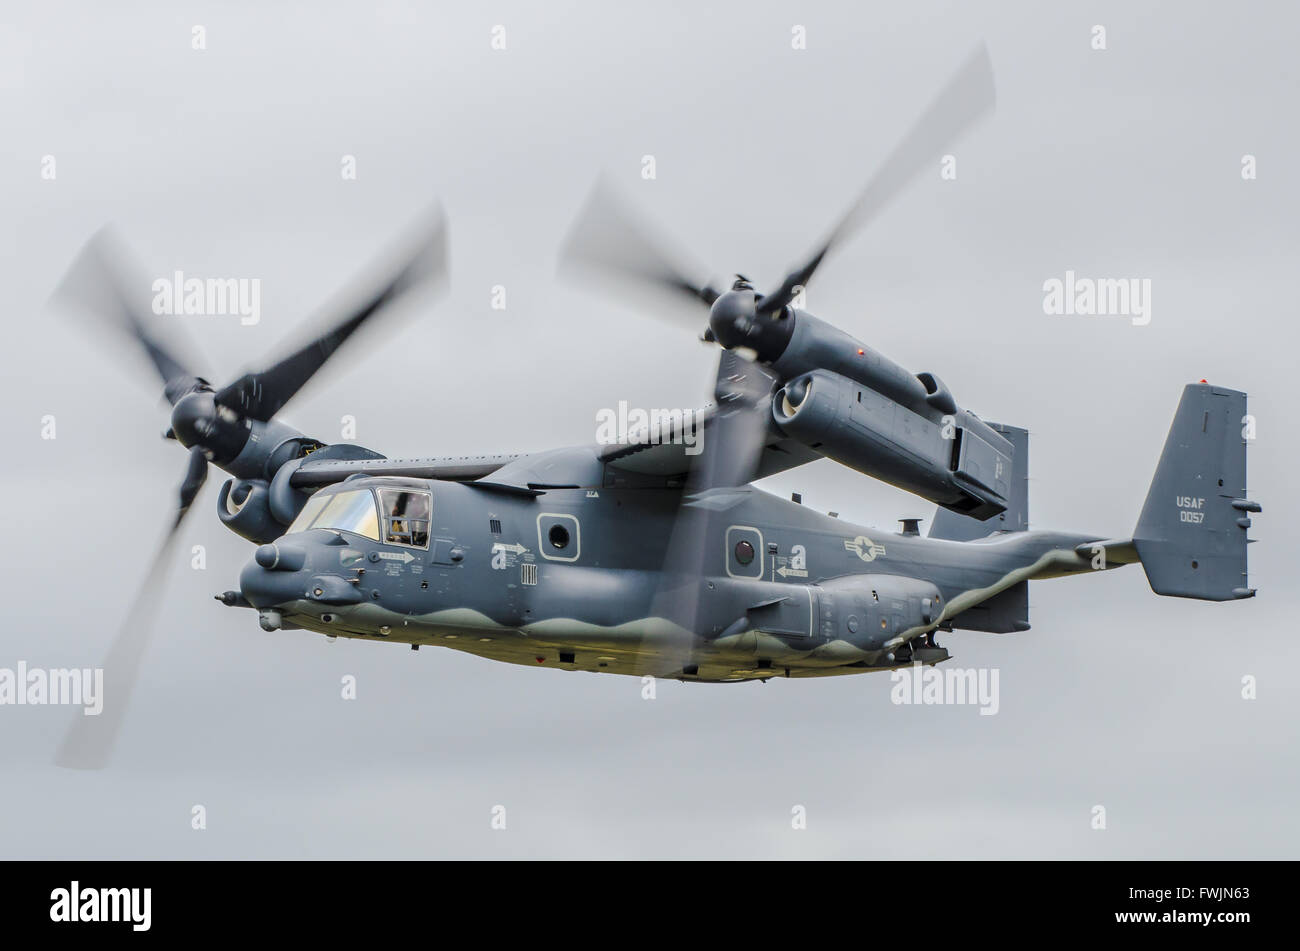 bell boeing v22 osprey is an american multimission